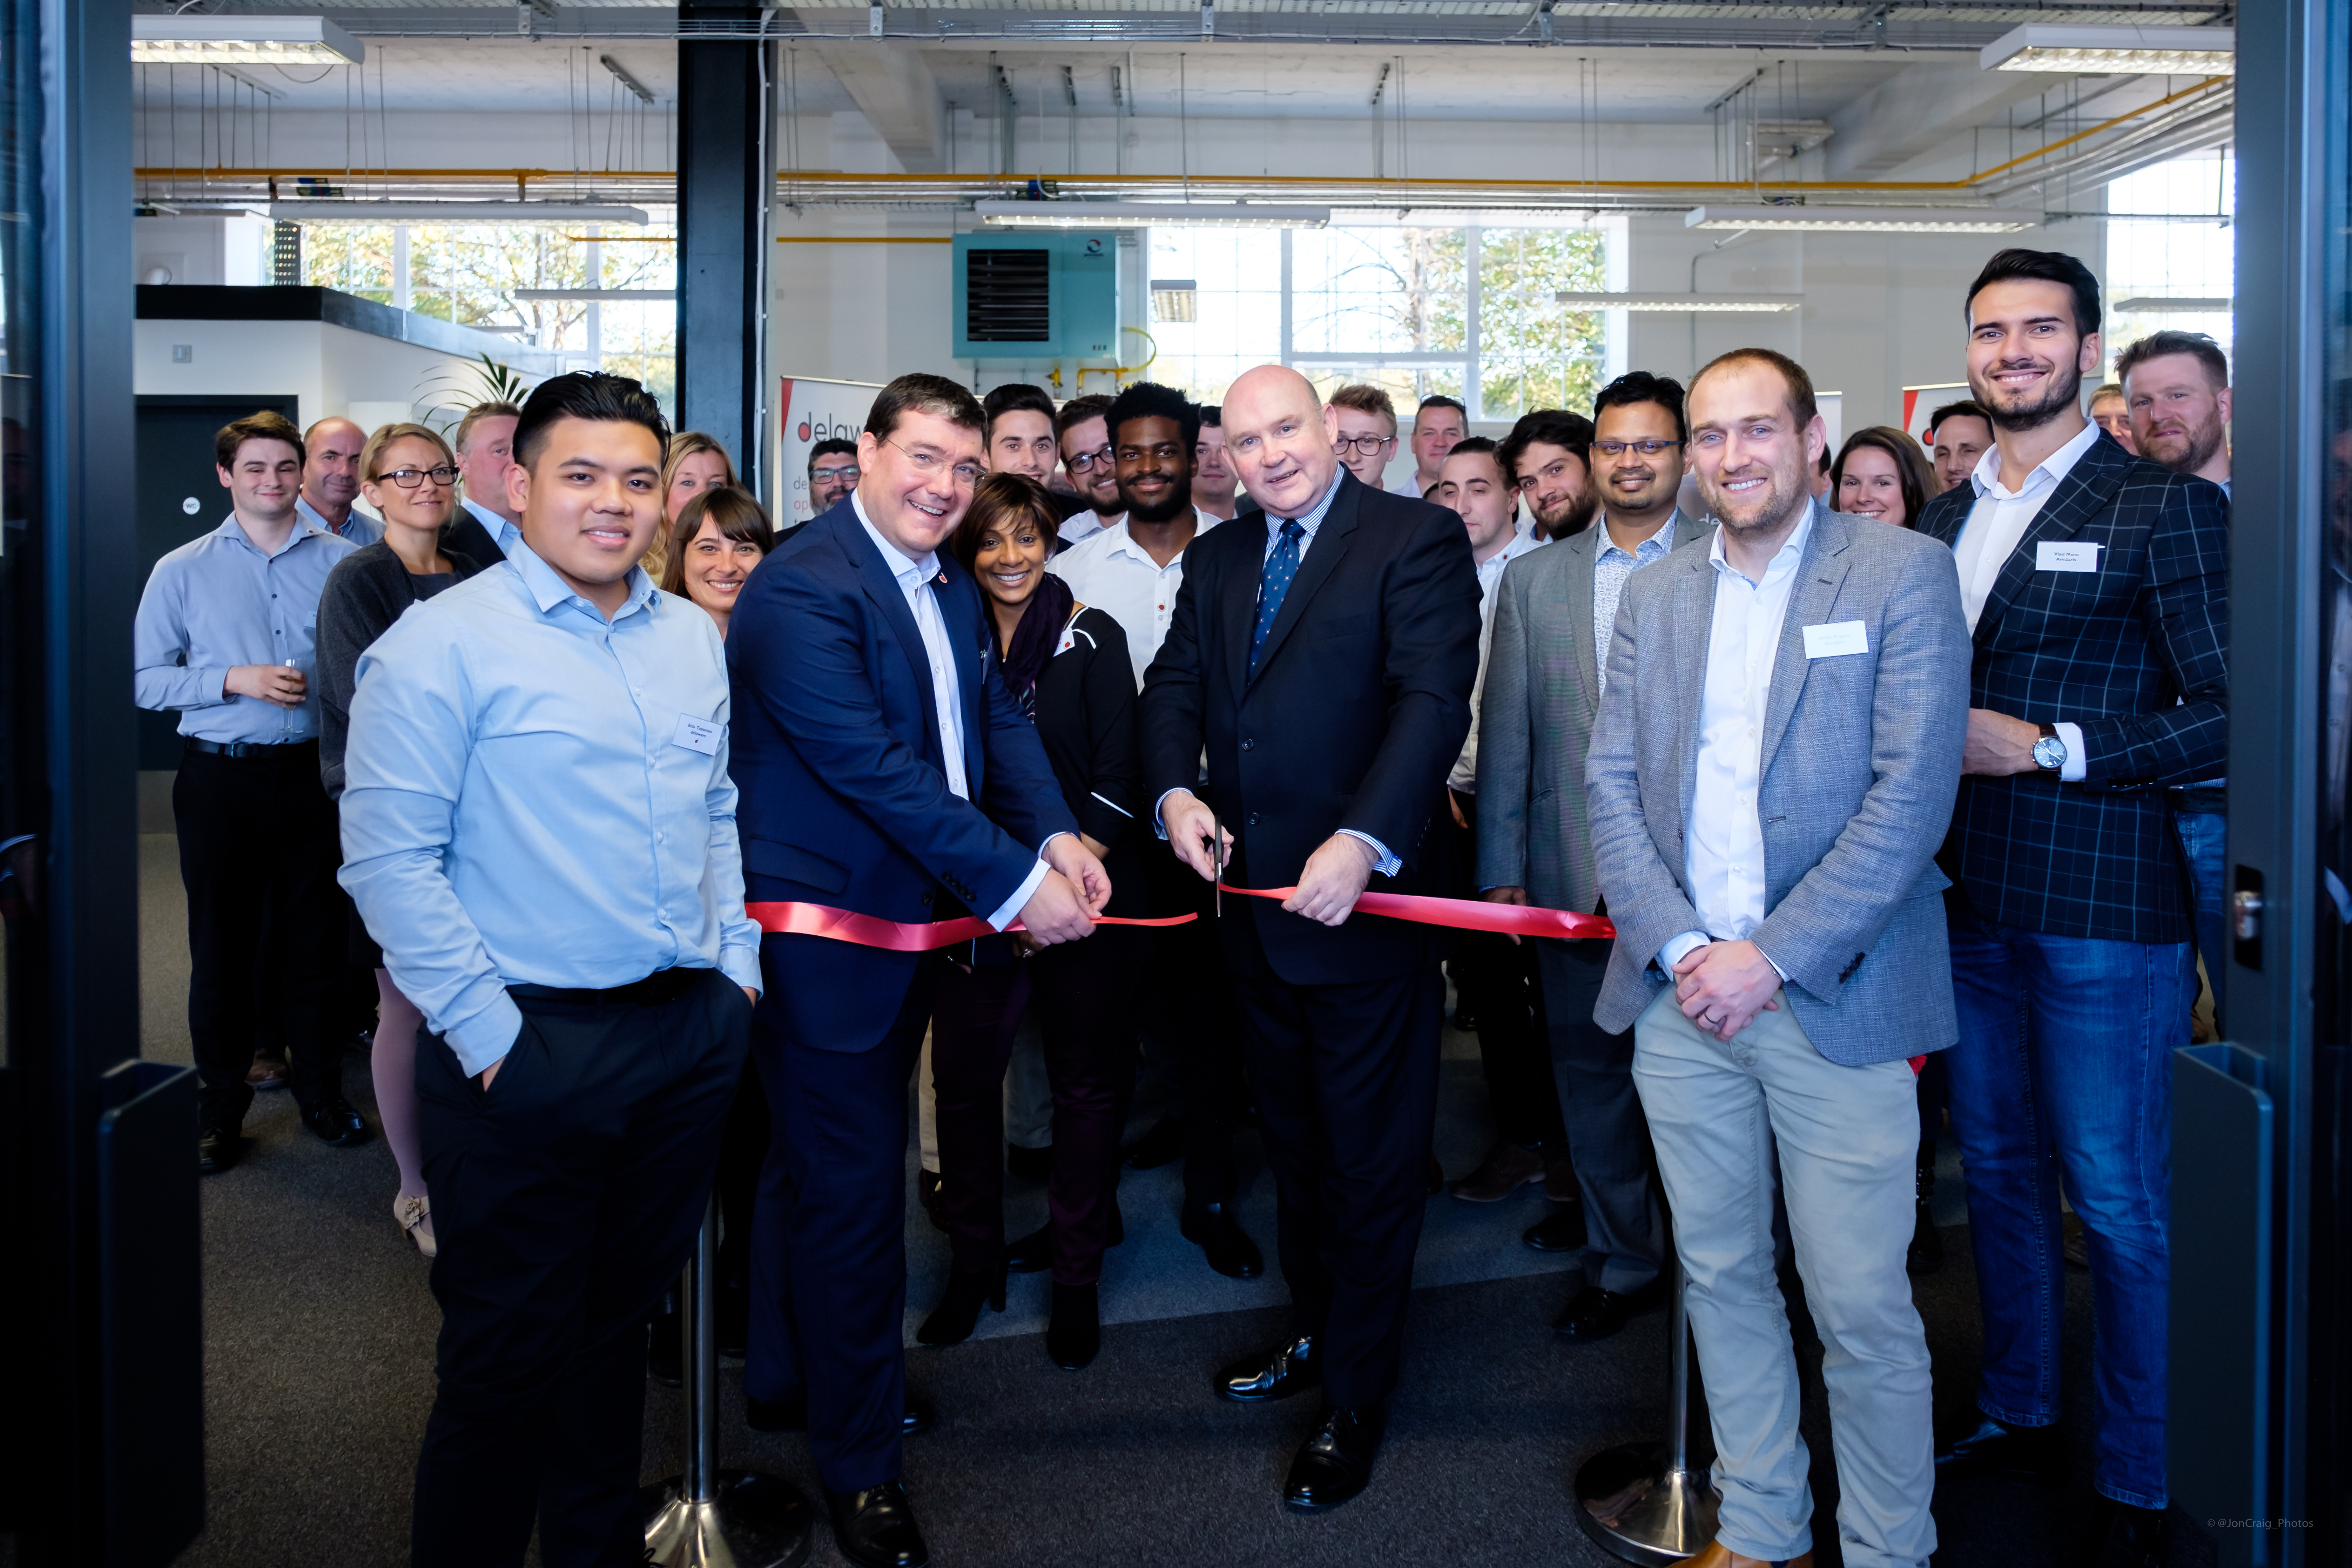 Delaware launches new UK delivery hub to extend global IT services